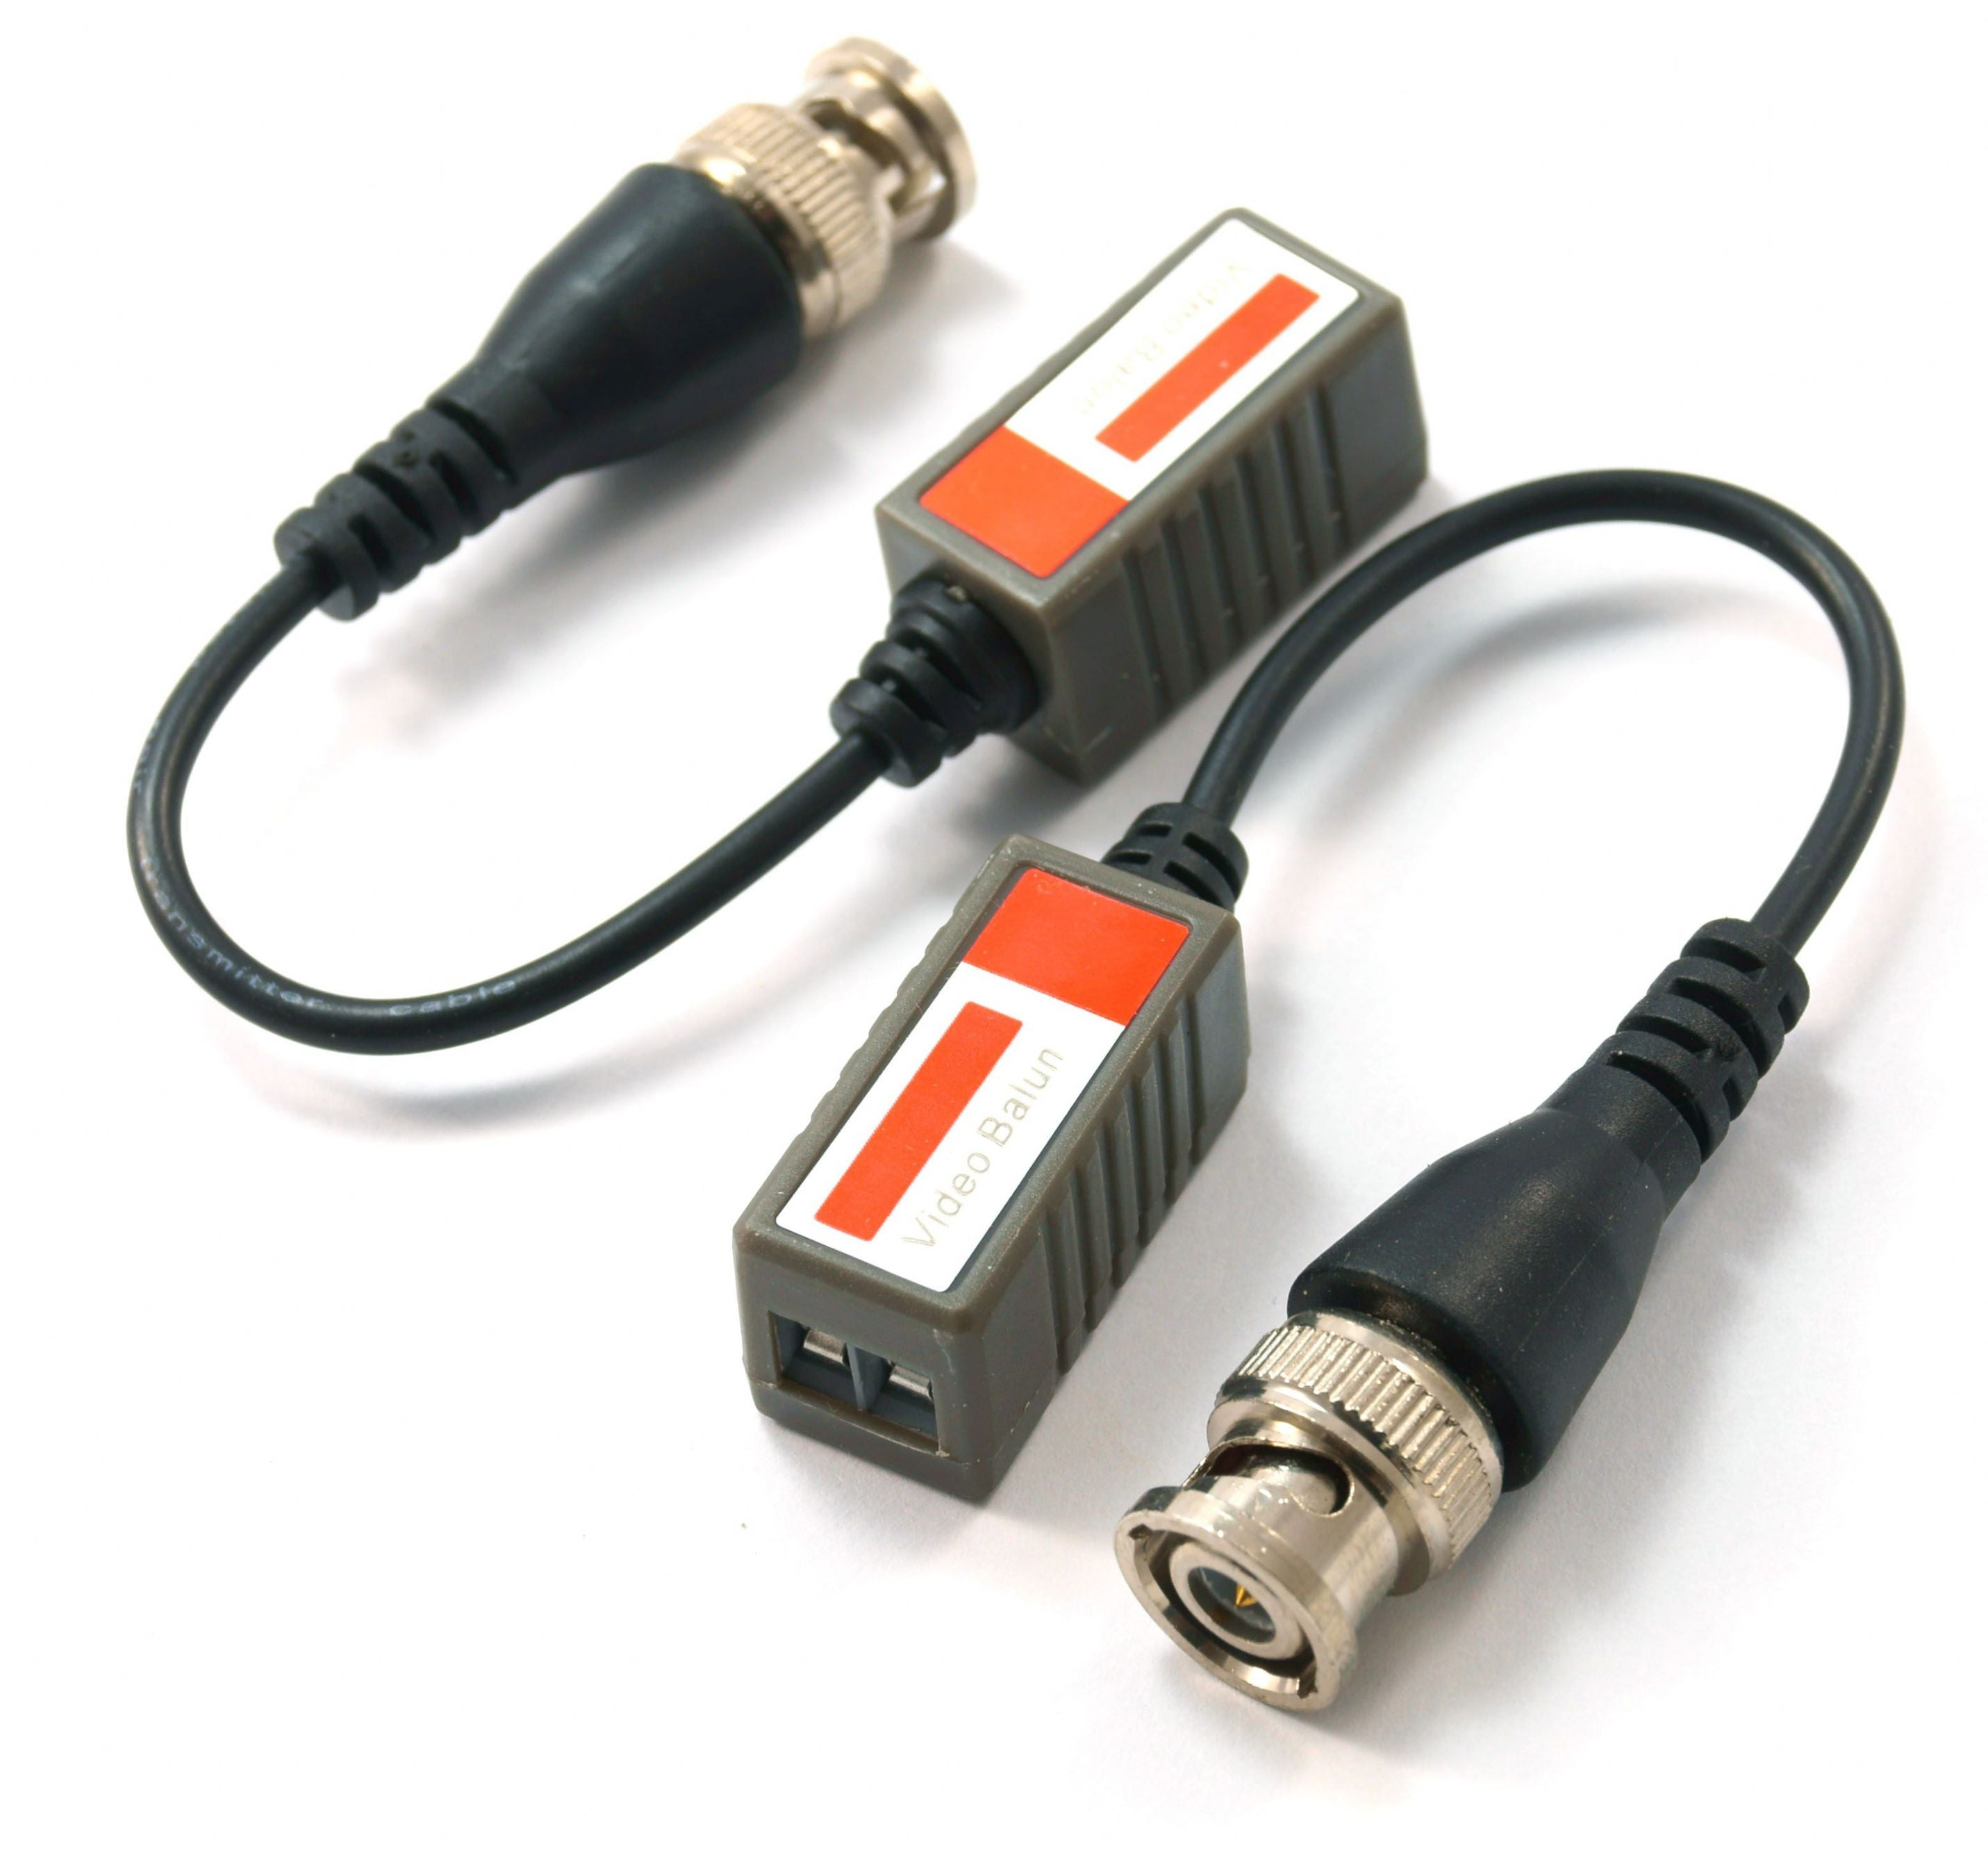 CCTV Video Balun with Extension Cable - Dool-X IT Republic